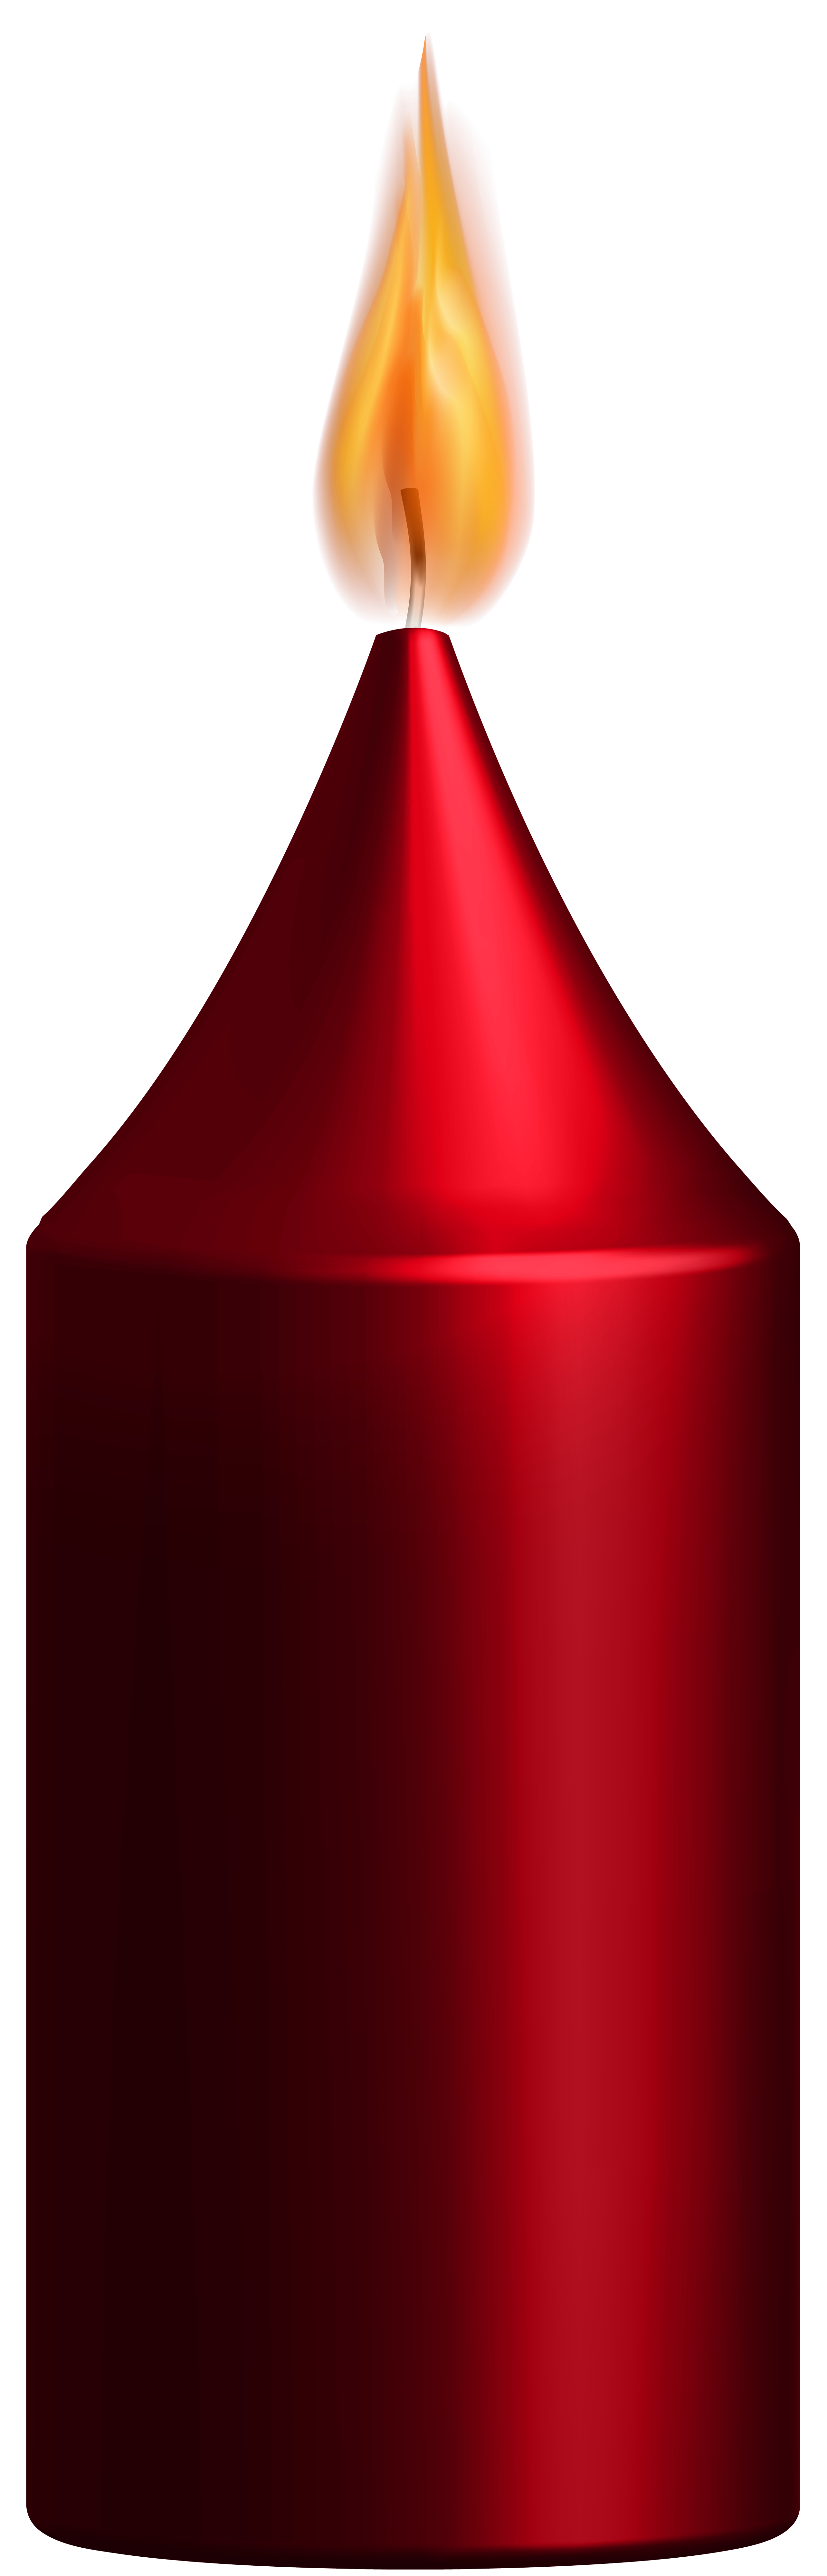 clip free stock Png clip art best. Candle clipart red candle.